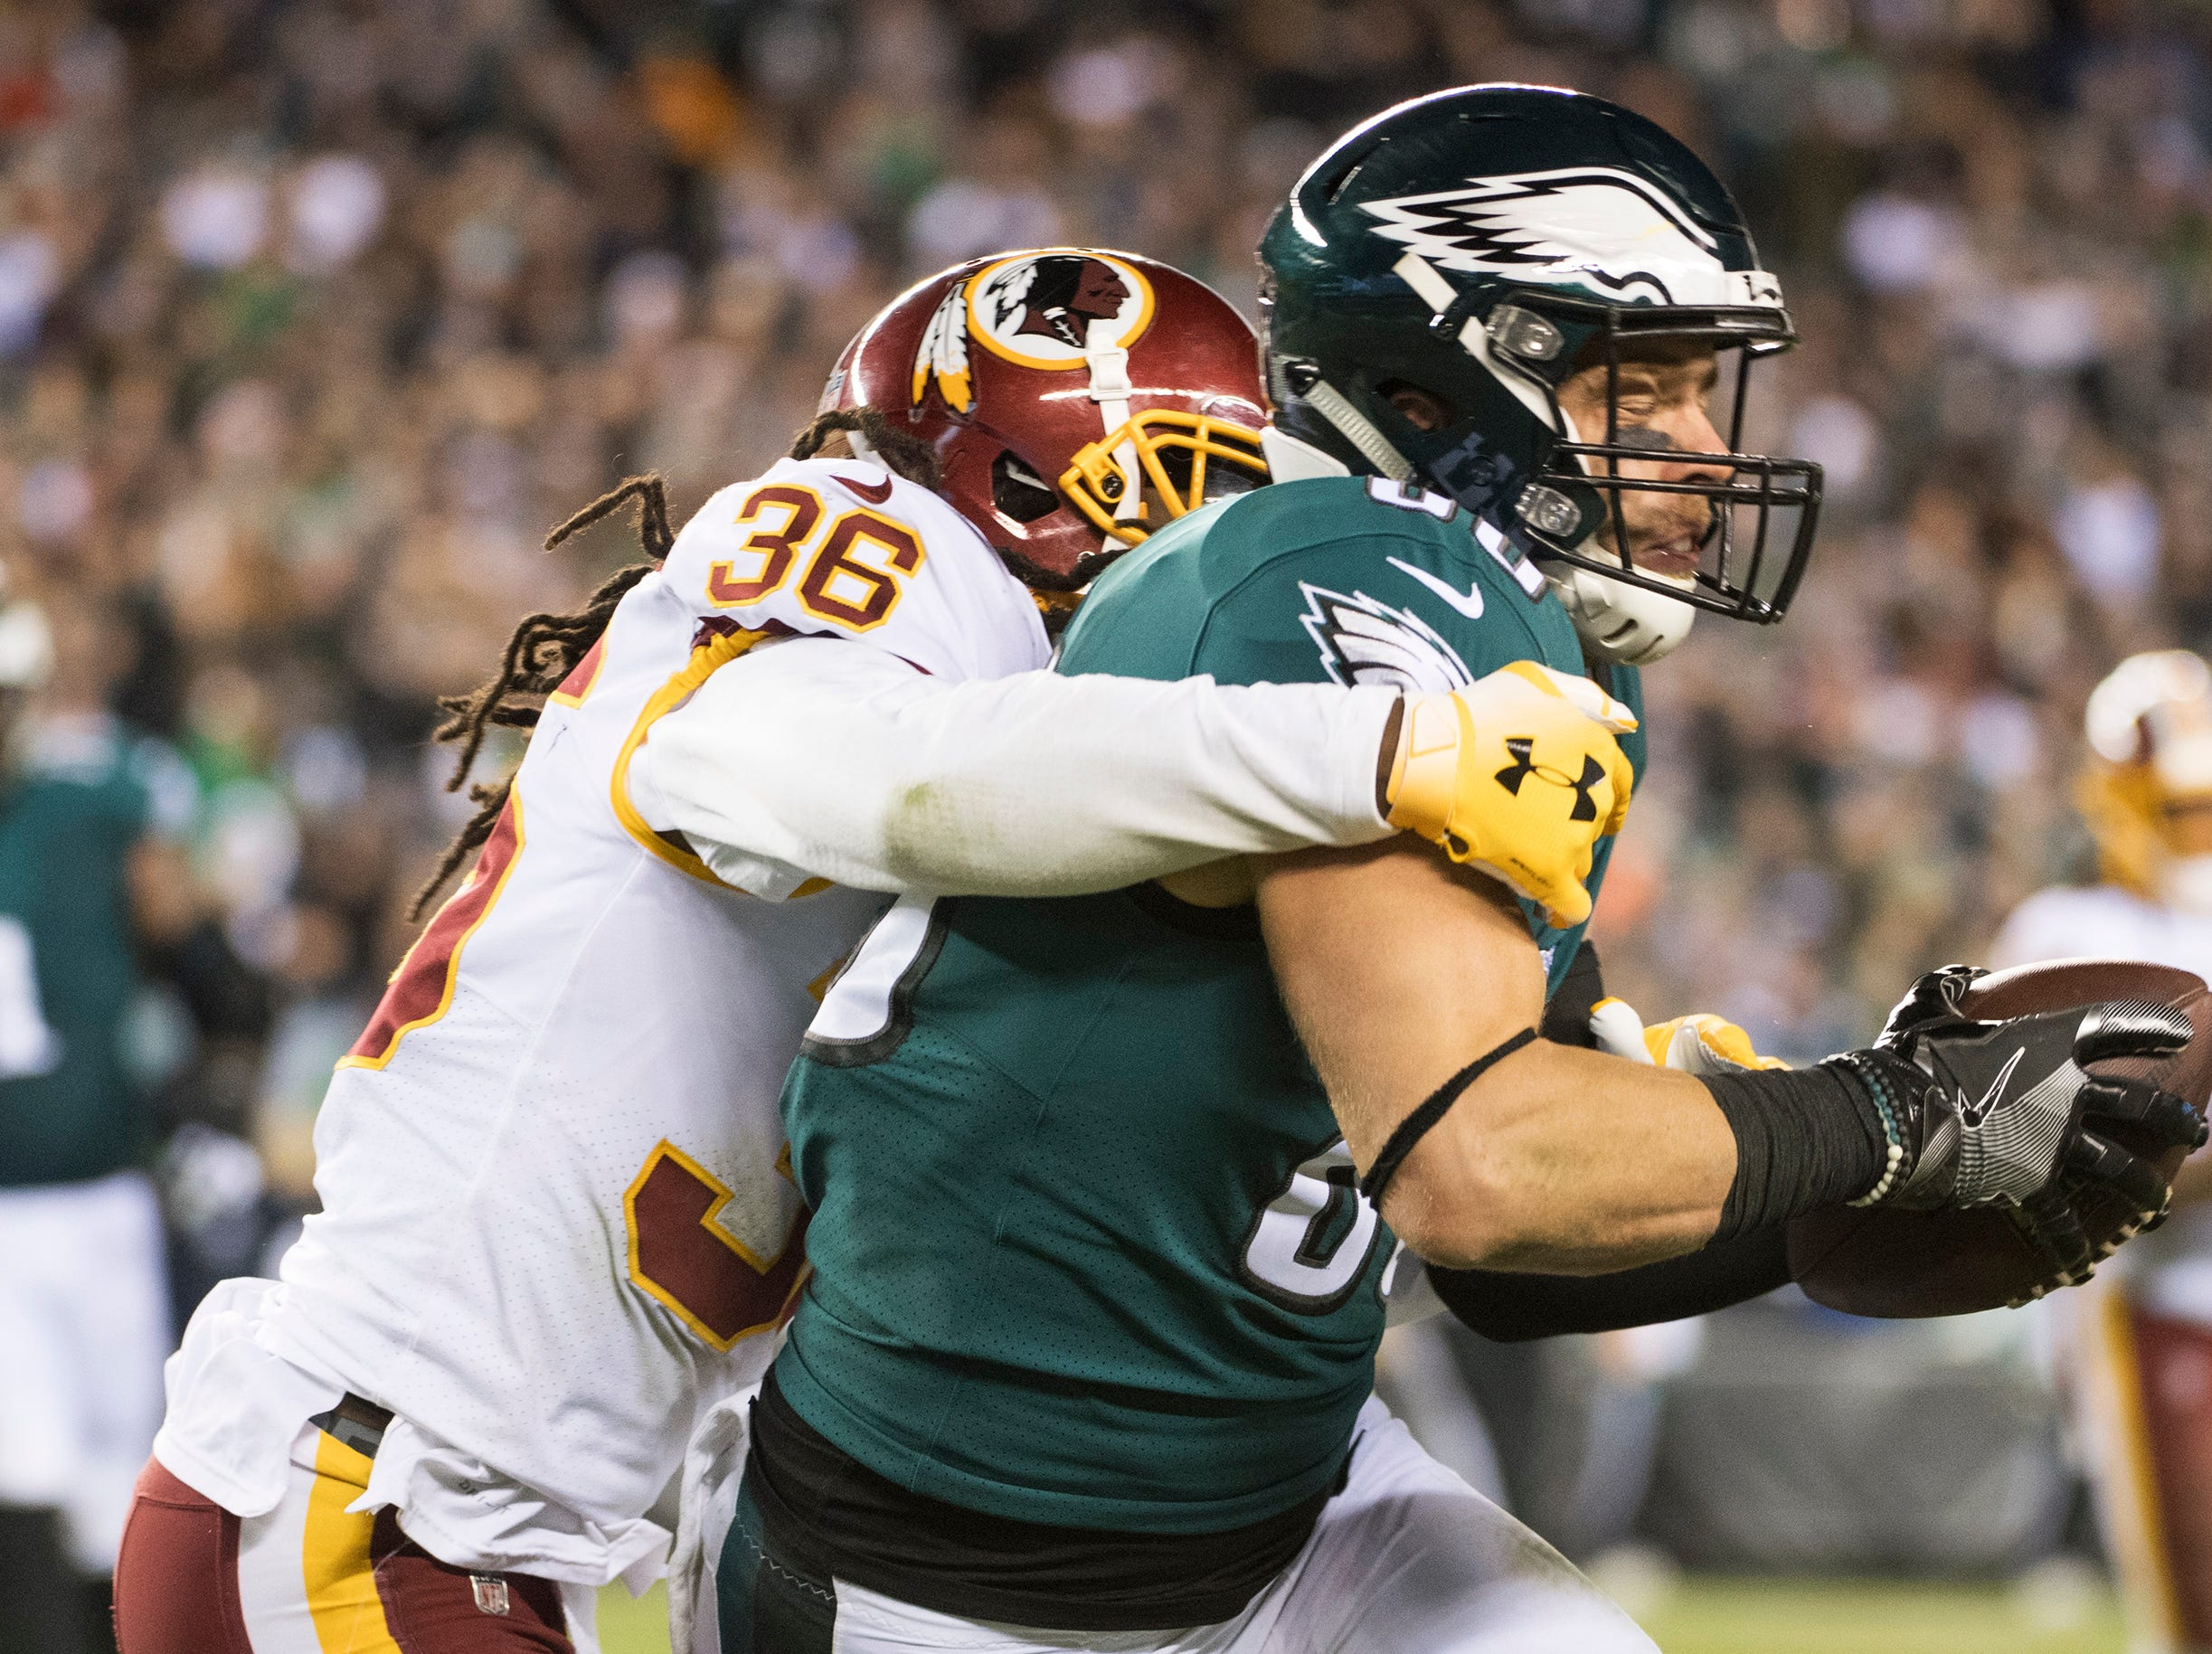 Eagles' Zach Ertz (86) is tackled by Redskins' D.J. Swearinger Sr. (36) Monday, Dec. 3, 2018 in Philadelphia. The Eagles won 28-13.